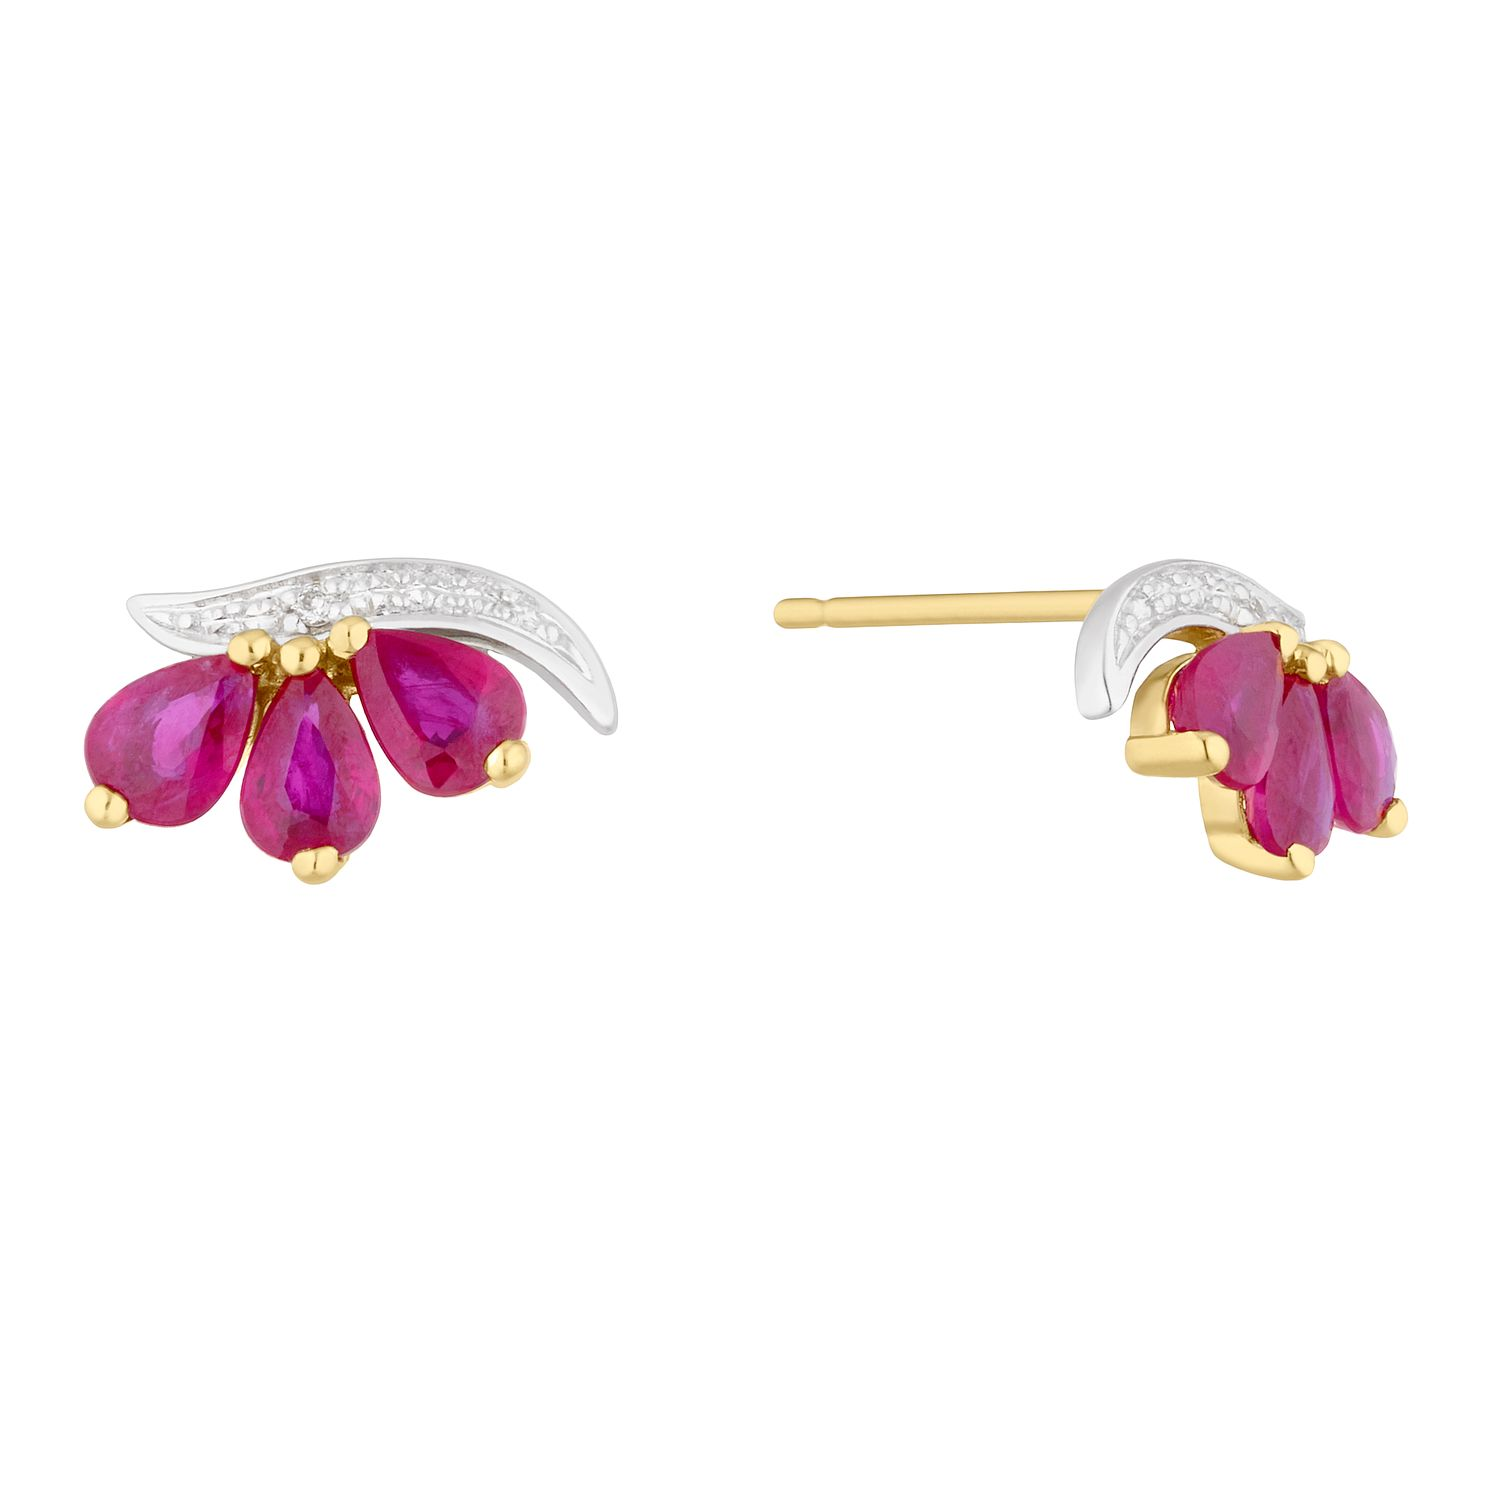 9ct Yellow Gold Ruby & Diamond 3 Stone Stud Earrings - Product number 5044111